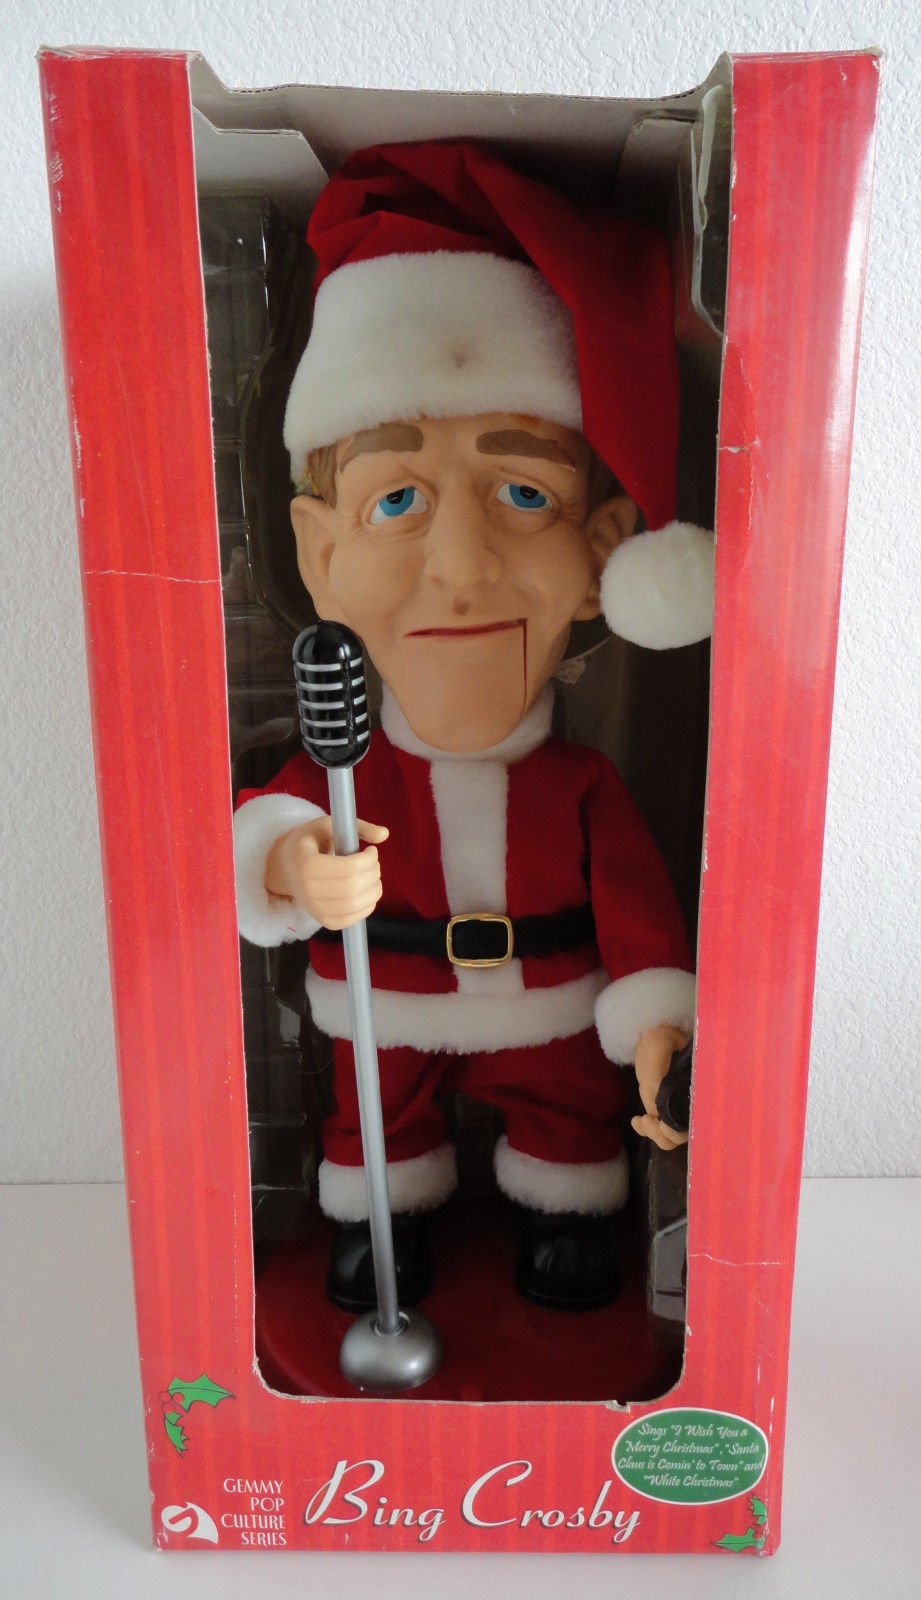 gemmy singing santa bing crosby animated figure box 2002 - Bing Crosby Christmas